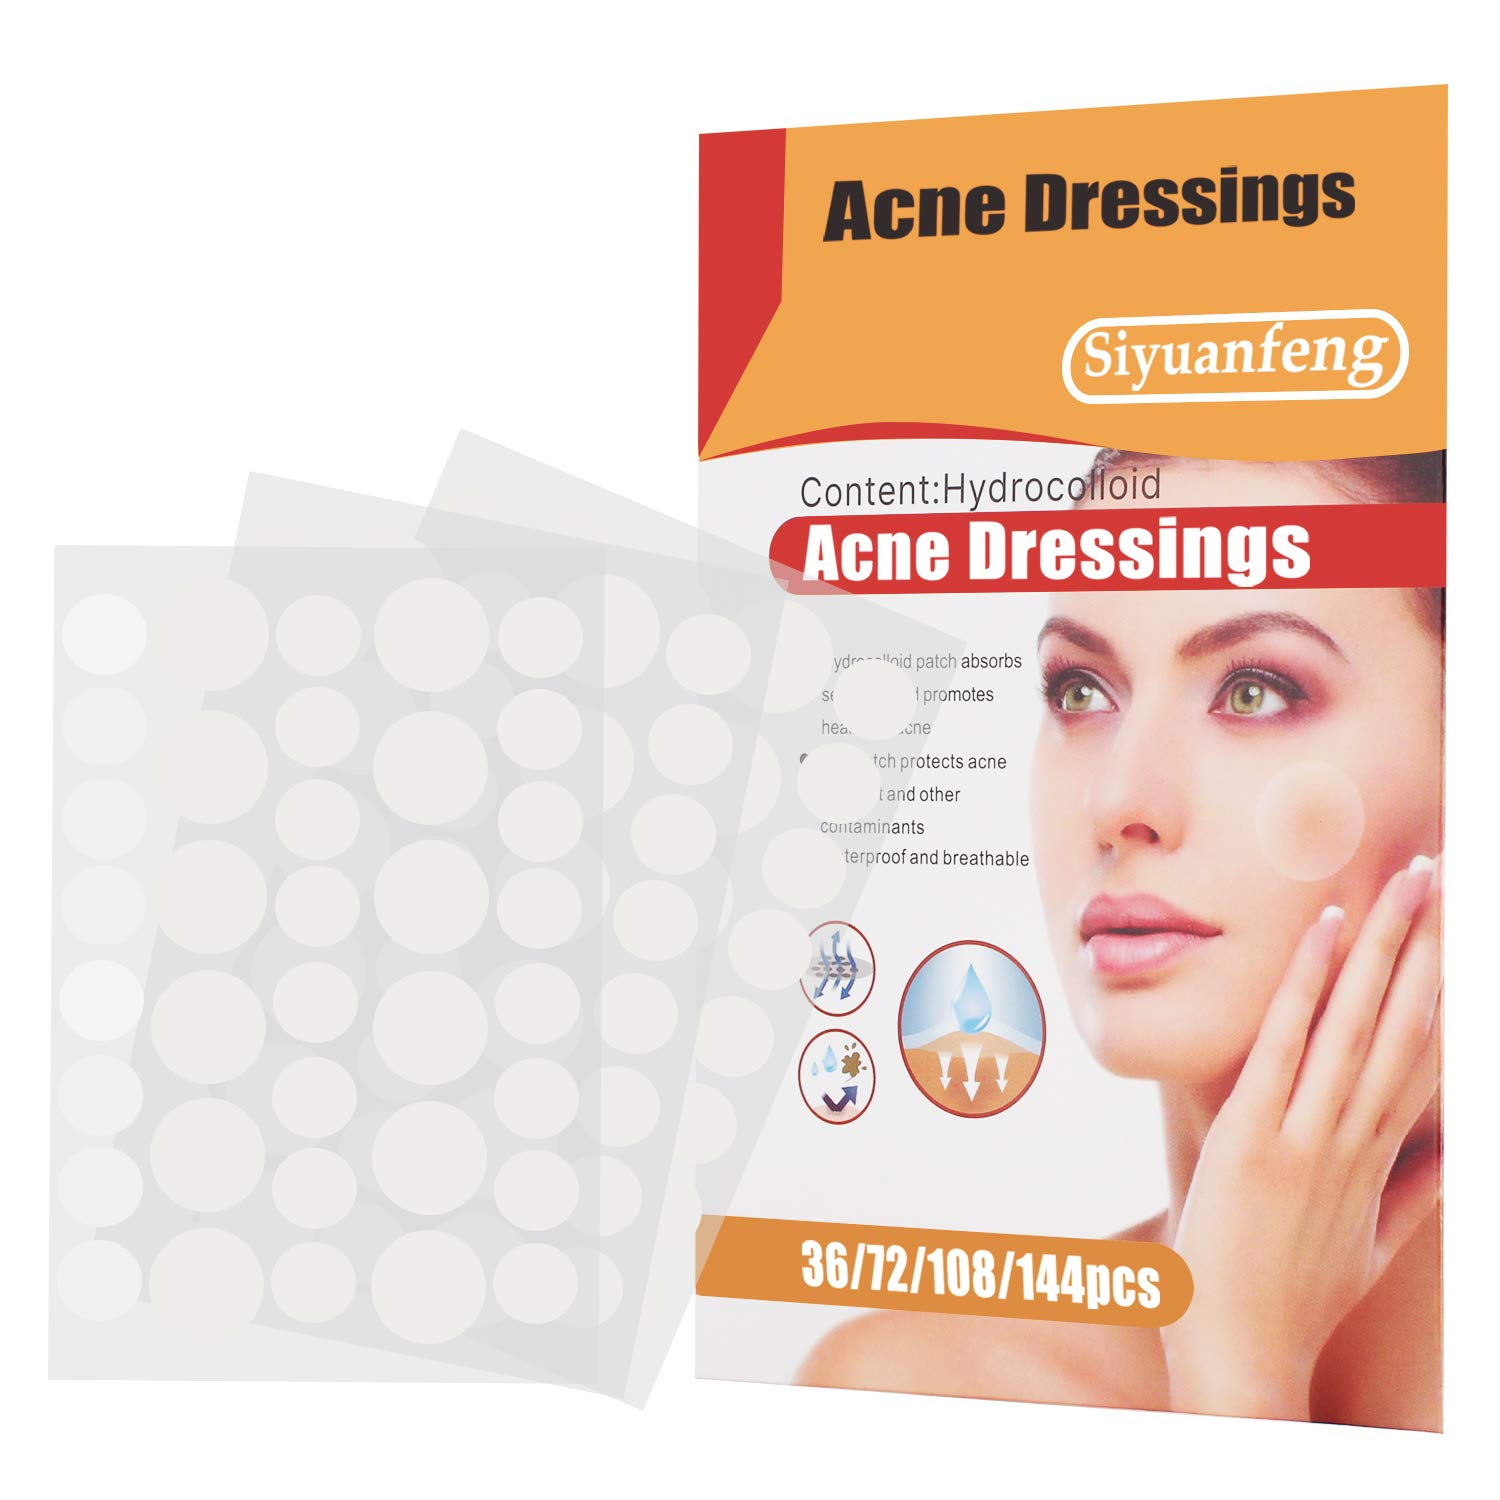 Pimple Acne Patch - Skin Tag Remover, natural Ingredients waterproof hydrocolloid acne Zit patches, acne pimple patch Set 108 patches